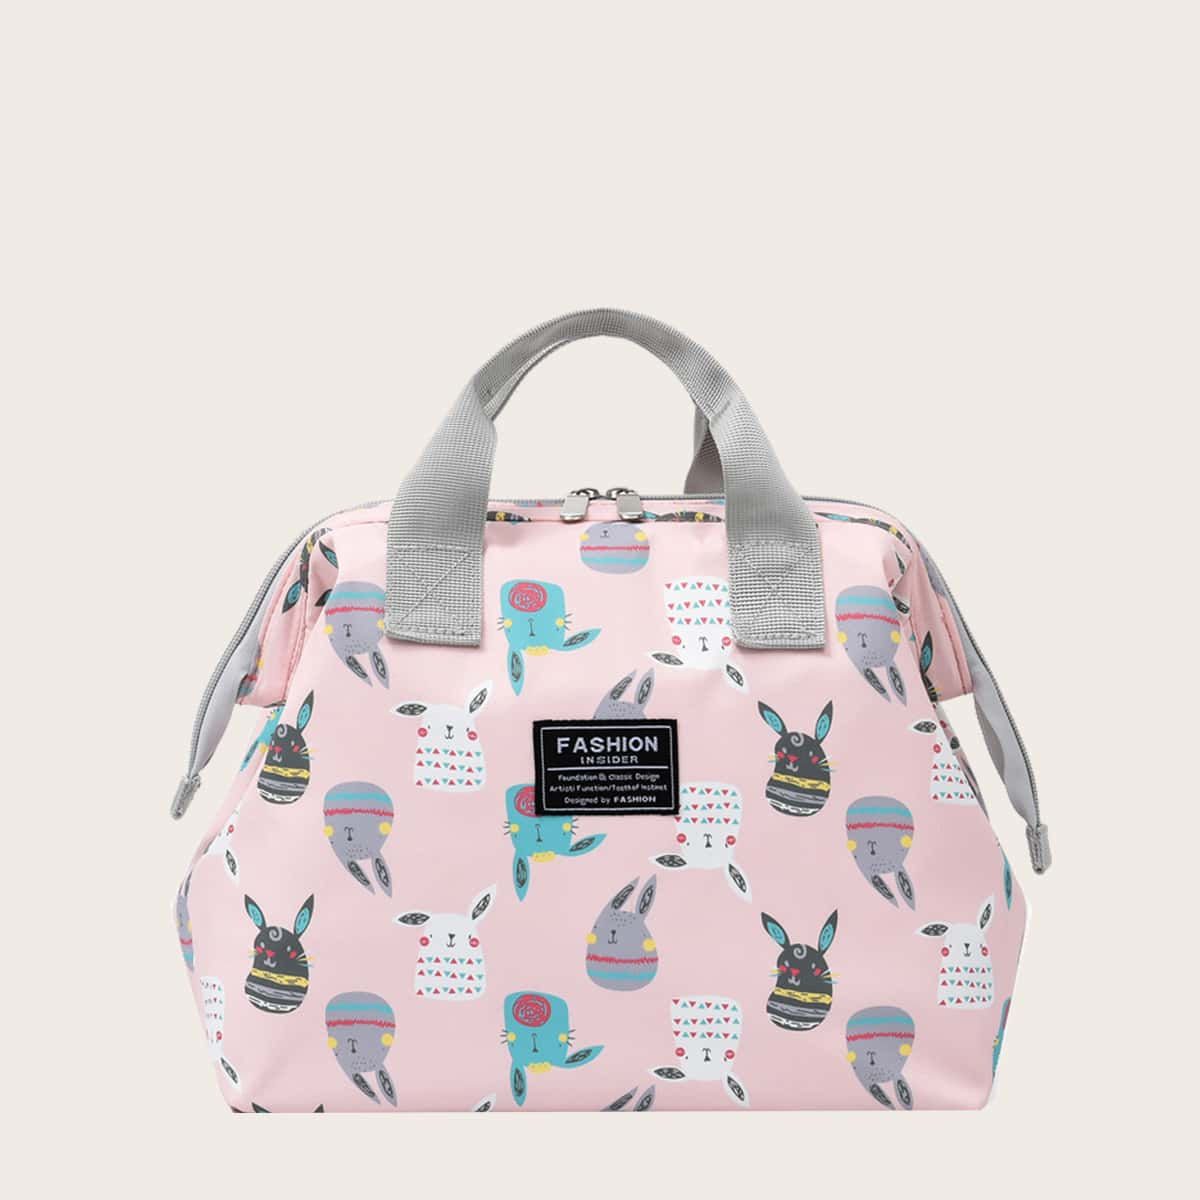 SHEIN / Cartoon Rabbit Graphic Satchel Bag